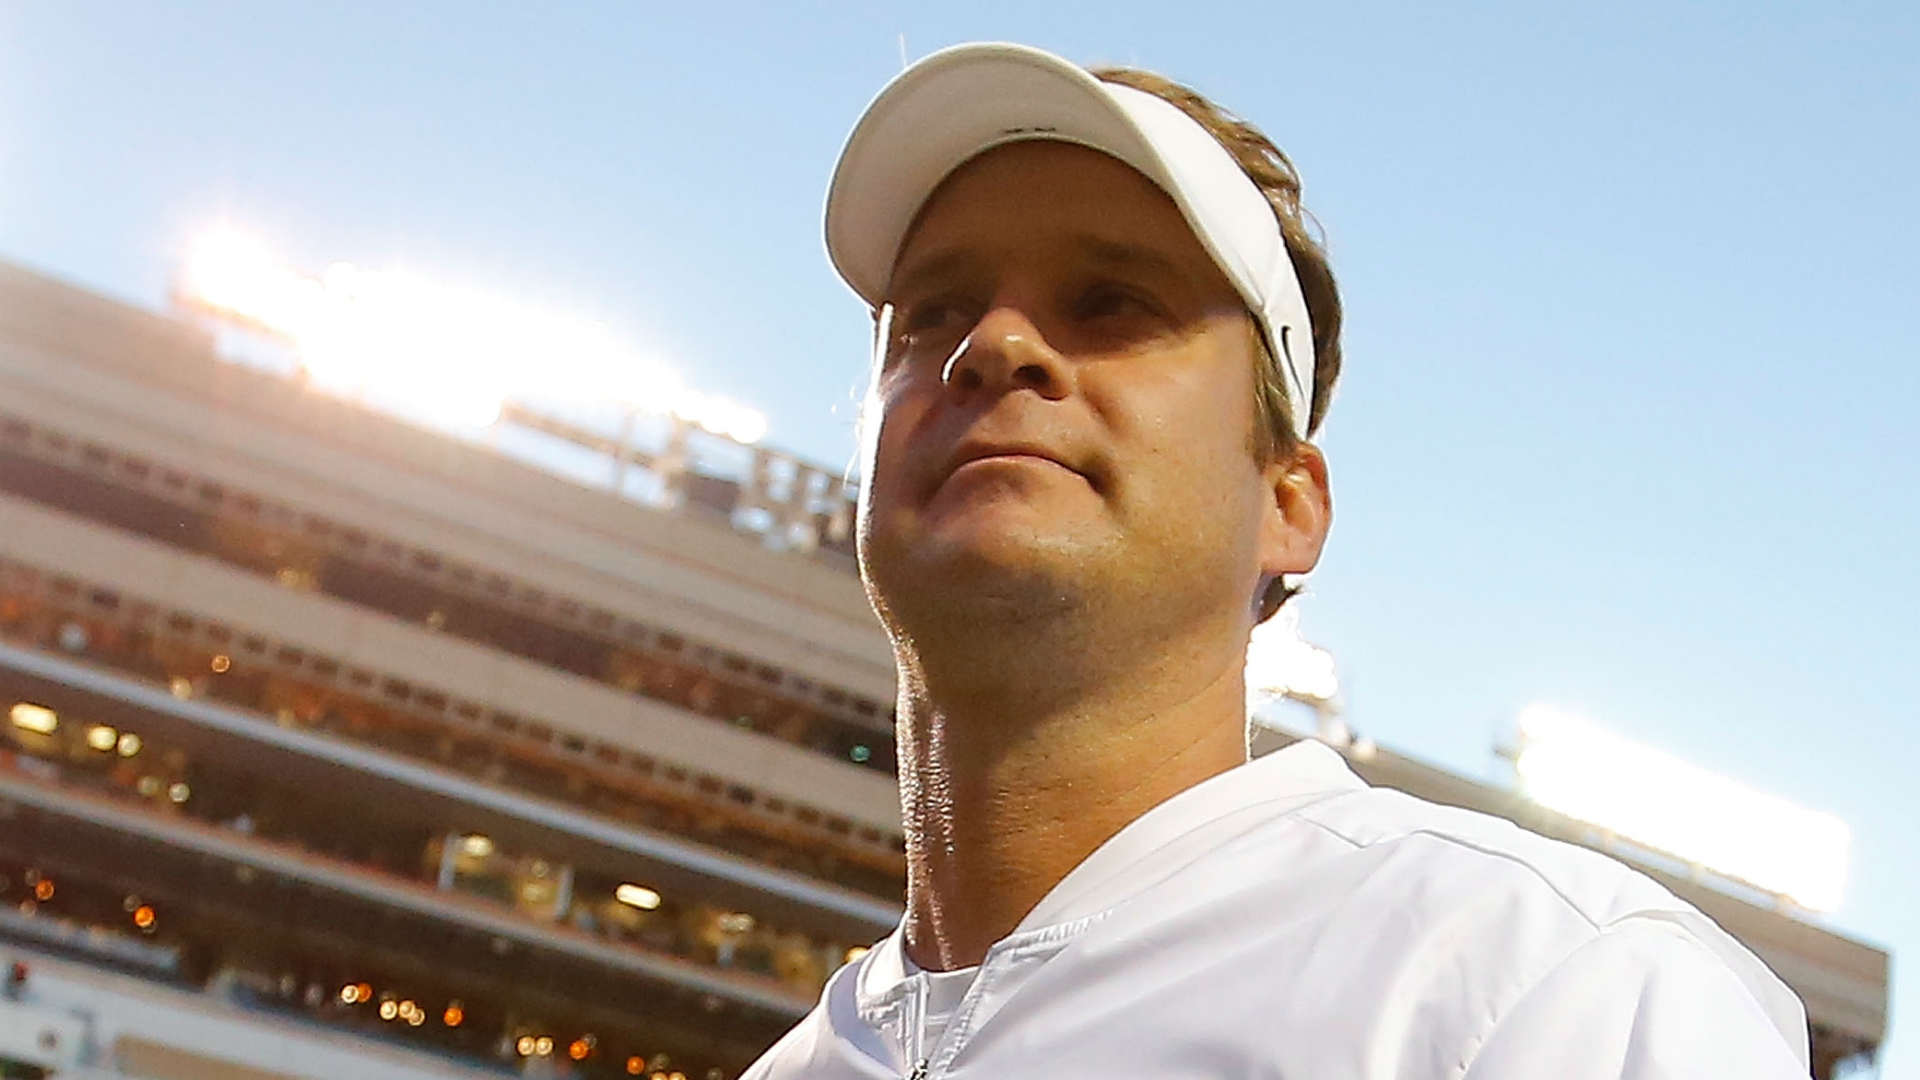 Lane-kiffin-052817-usnews-getty-ftr_i0umzf15yvnb17v9bc3rq4ptf